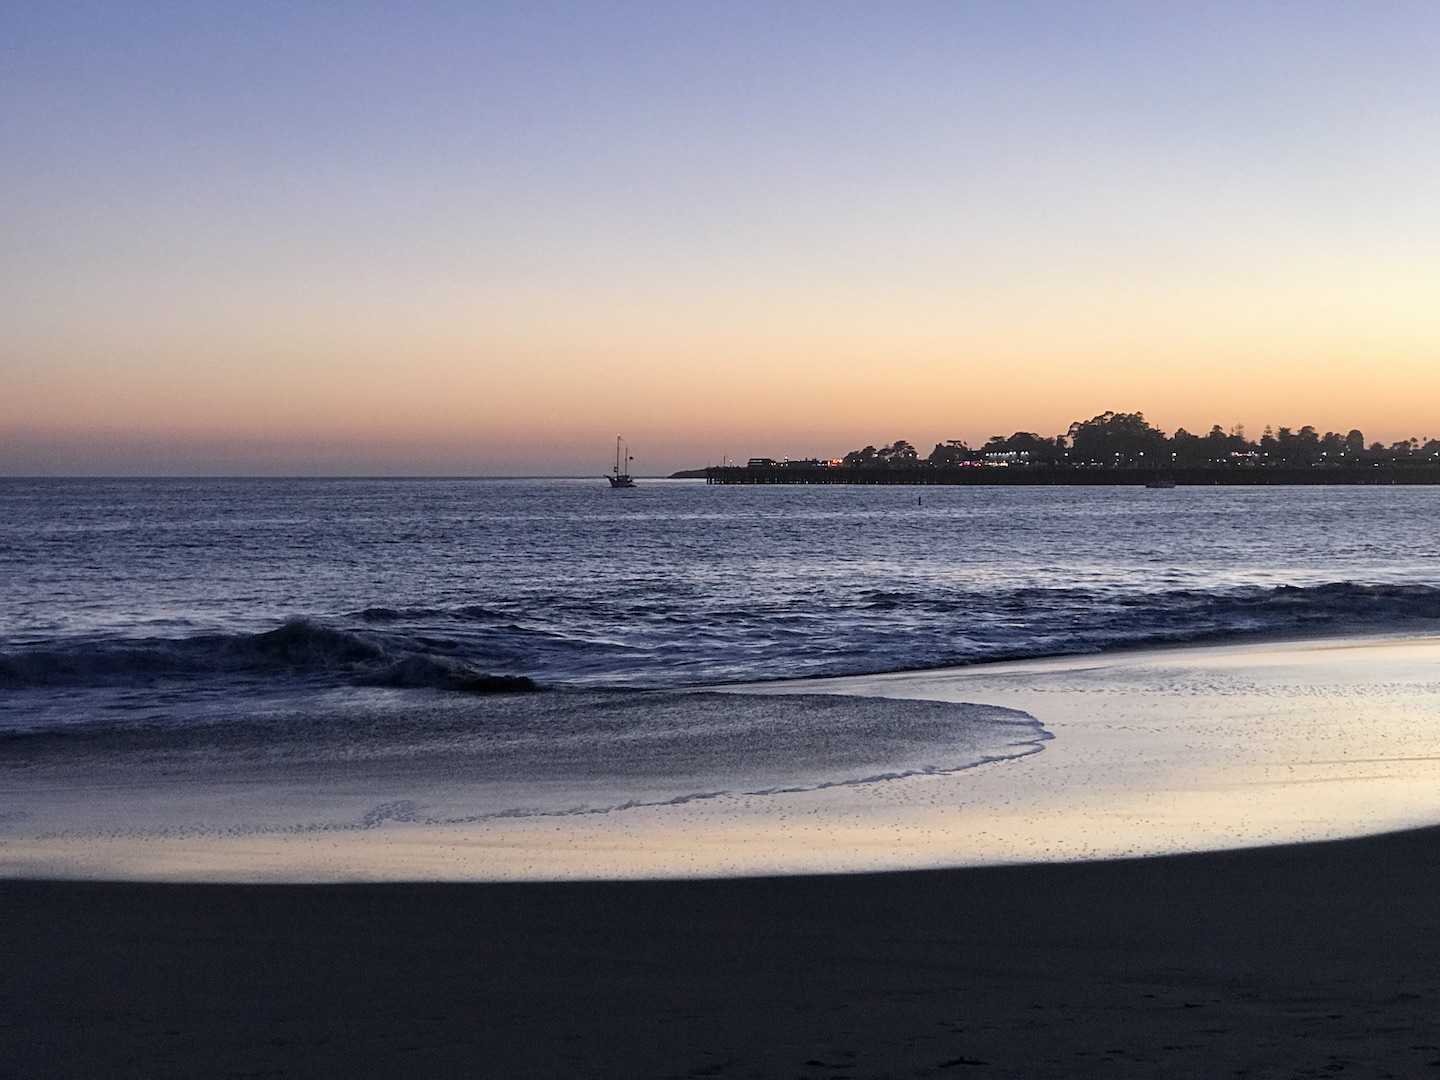 The sunsets at Seabright Beach are often amazing, with the Santa Cruz Municipal Pier in the background, and sea lions barking in the distance and often seen swimming close by.